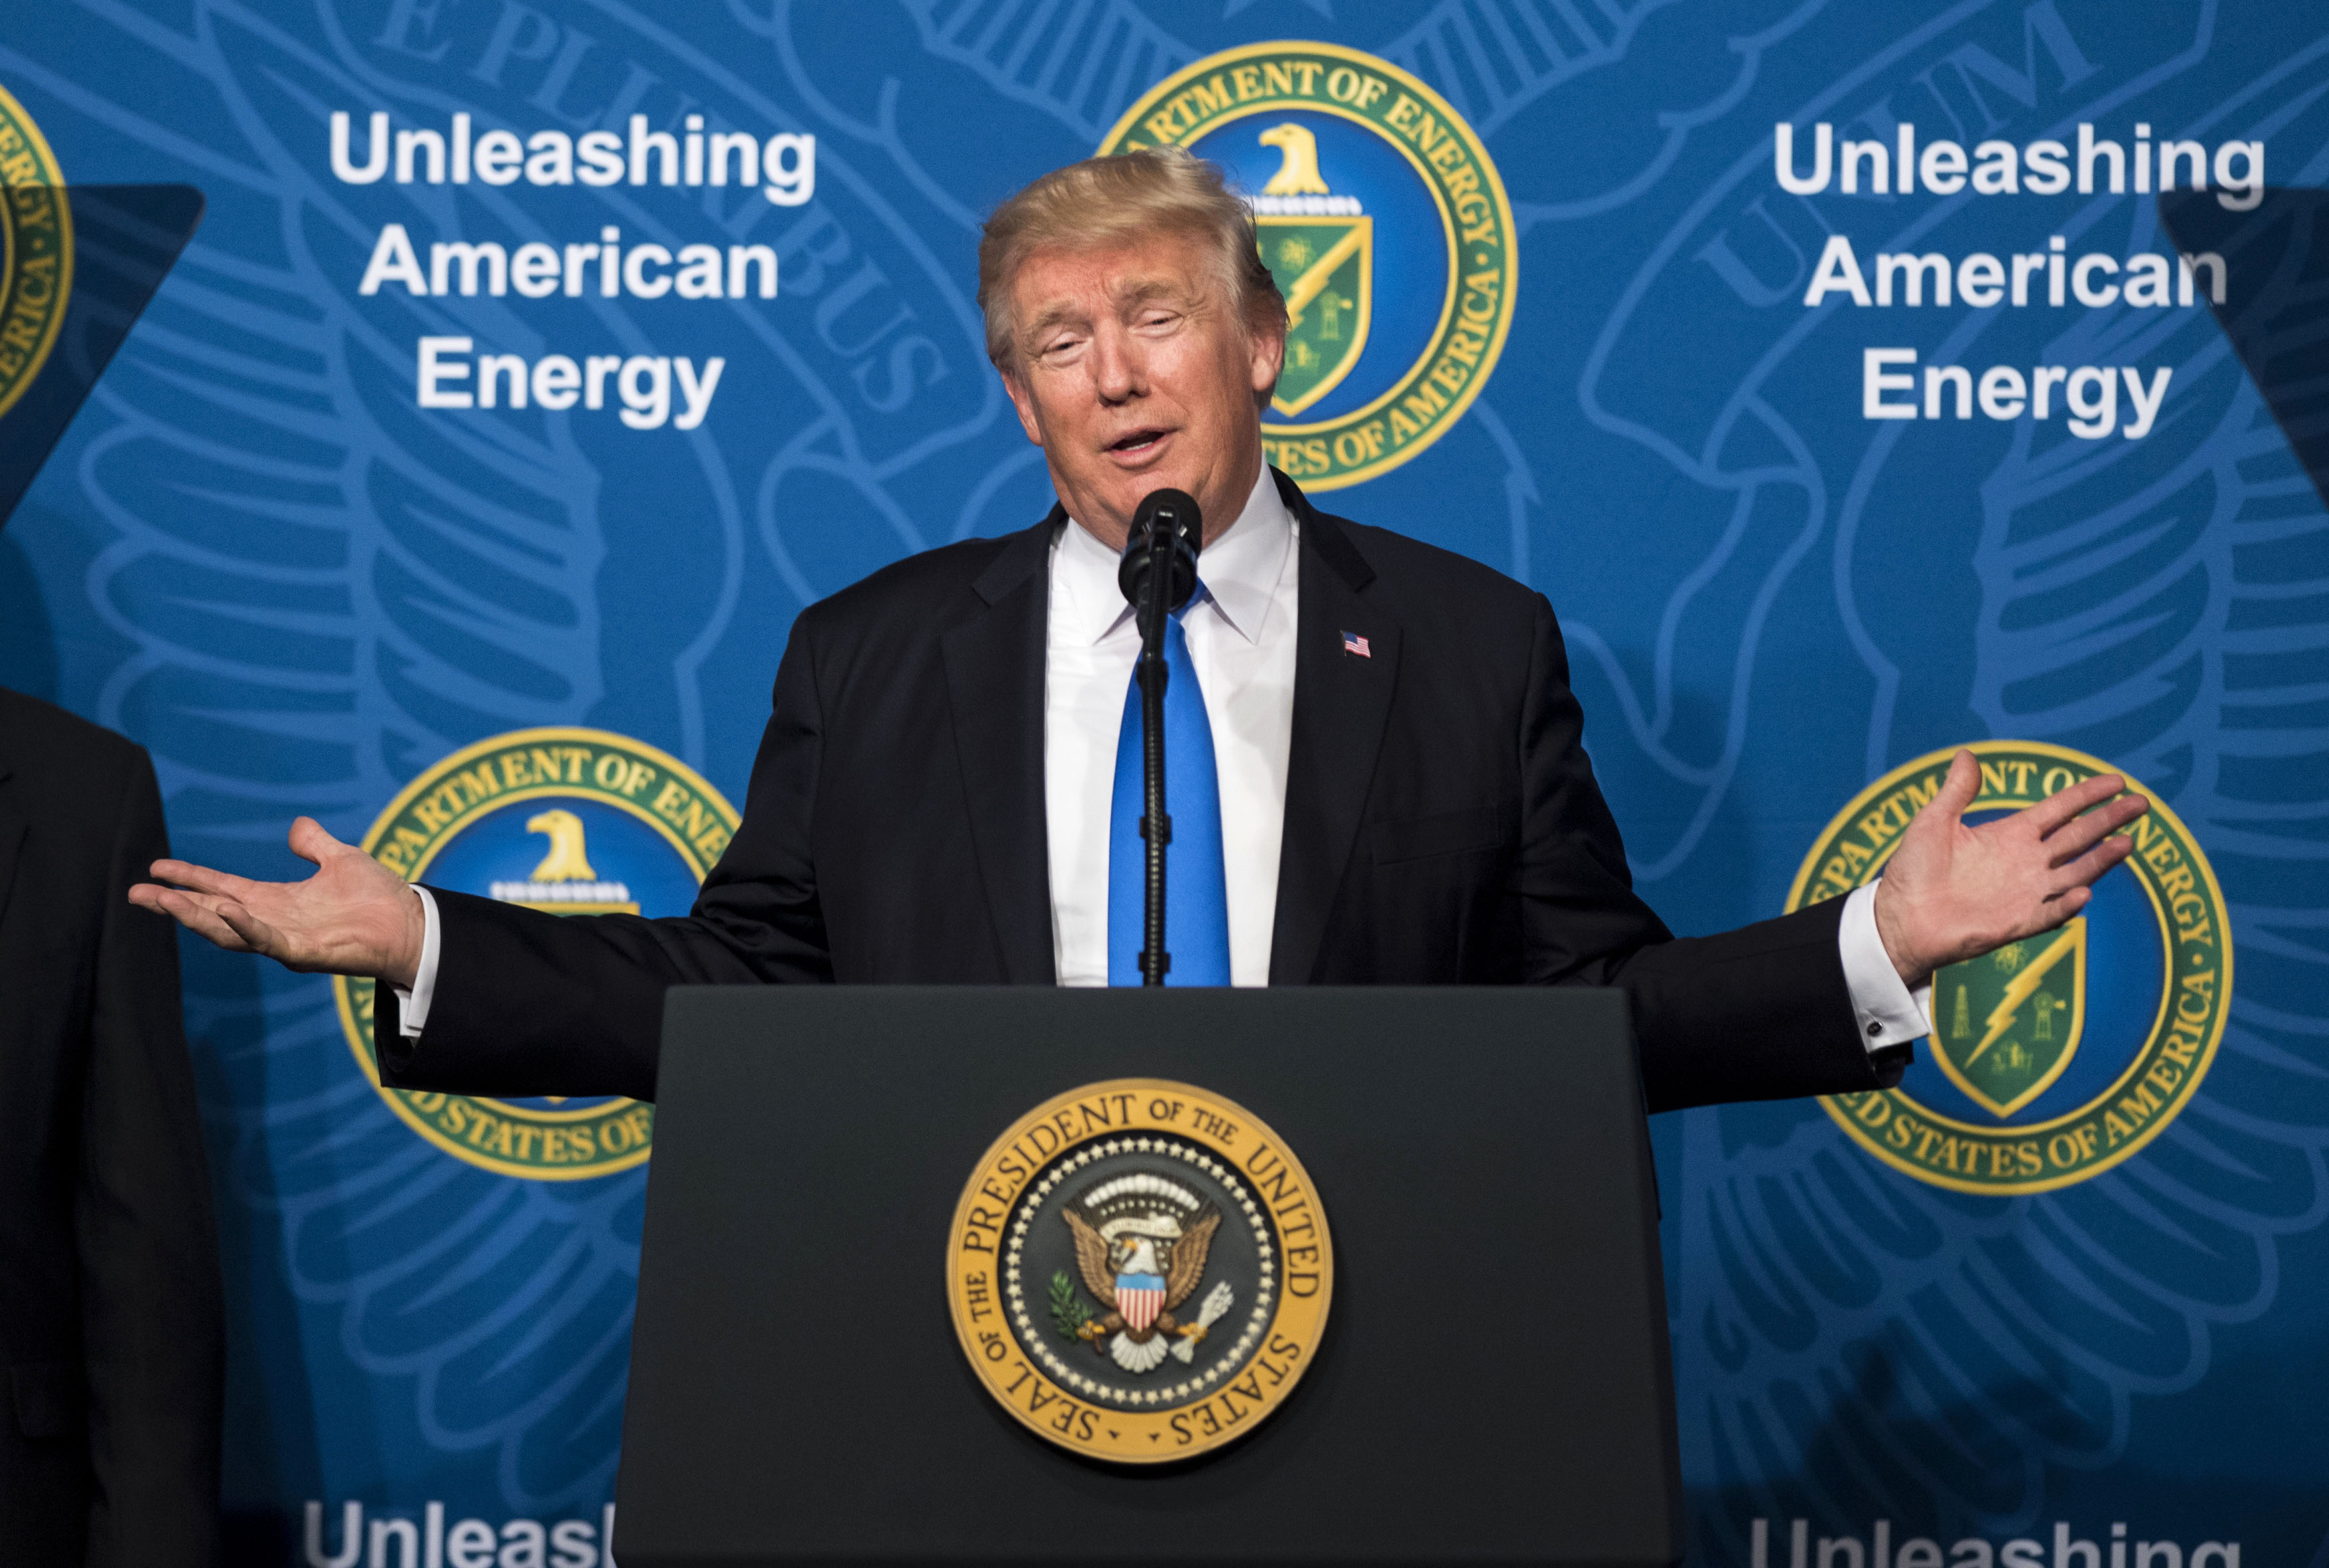 President Trump speaks during the Unleashing American Energy event at the Department of Energy in Washington, D.C., on  June 29, 2017.